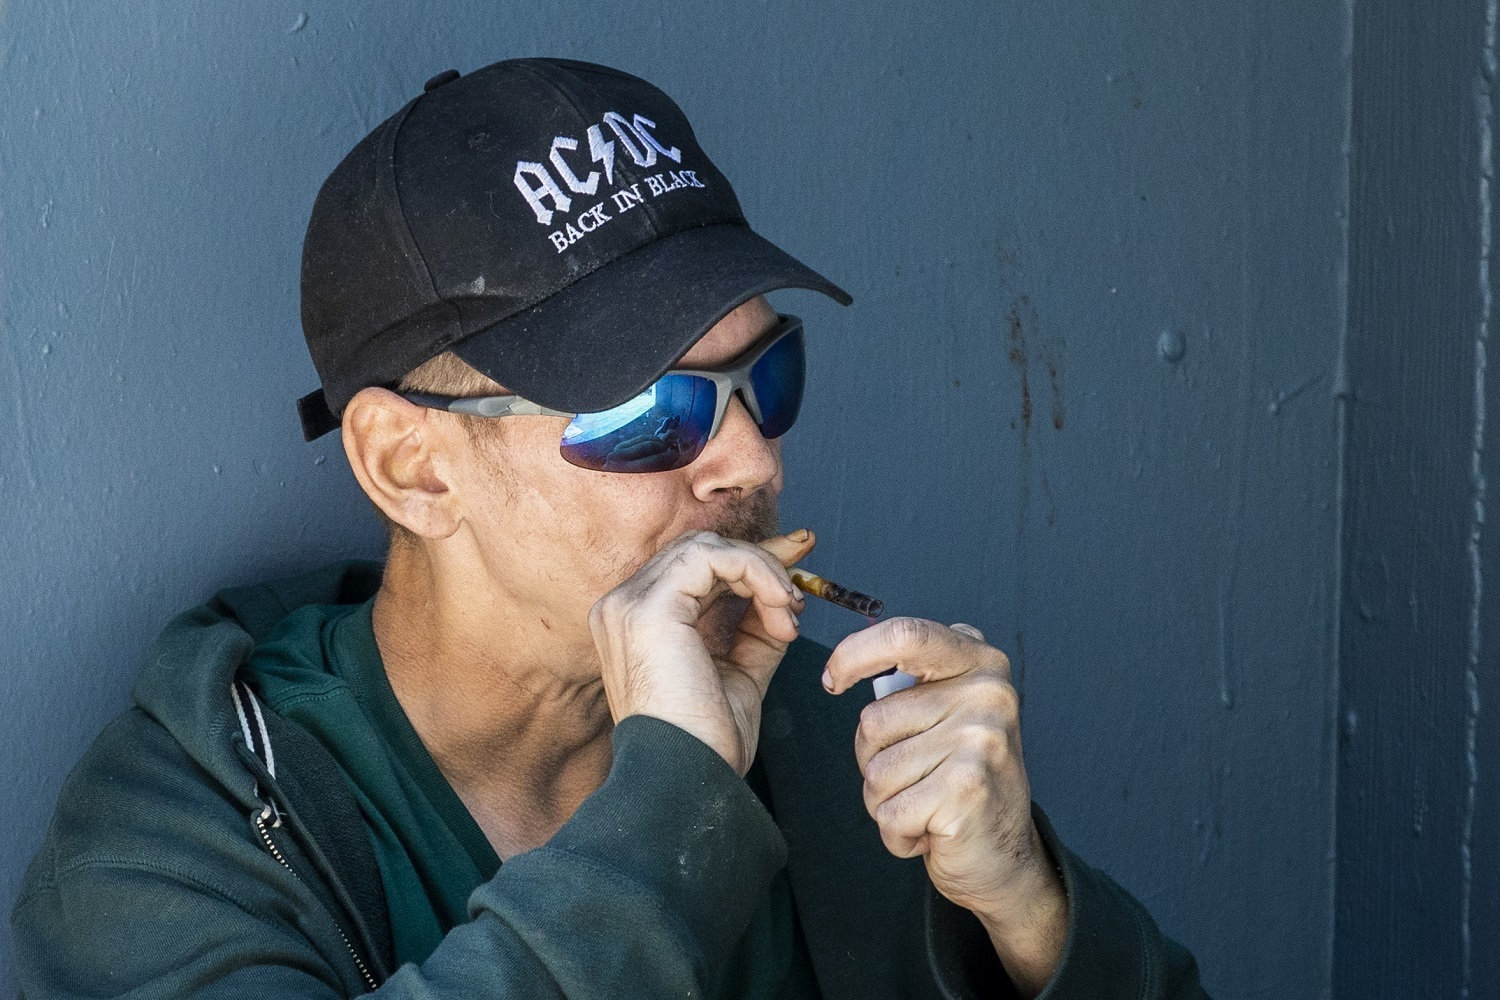 A man smokes drugs along Hastings Street in Vancouver, British Columbia on Friday, September 6, 2019. (Ben Nelms/CBC)